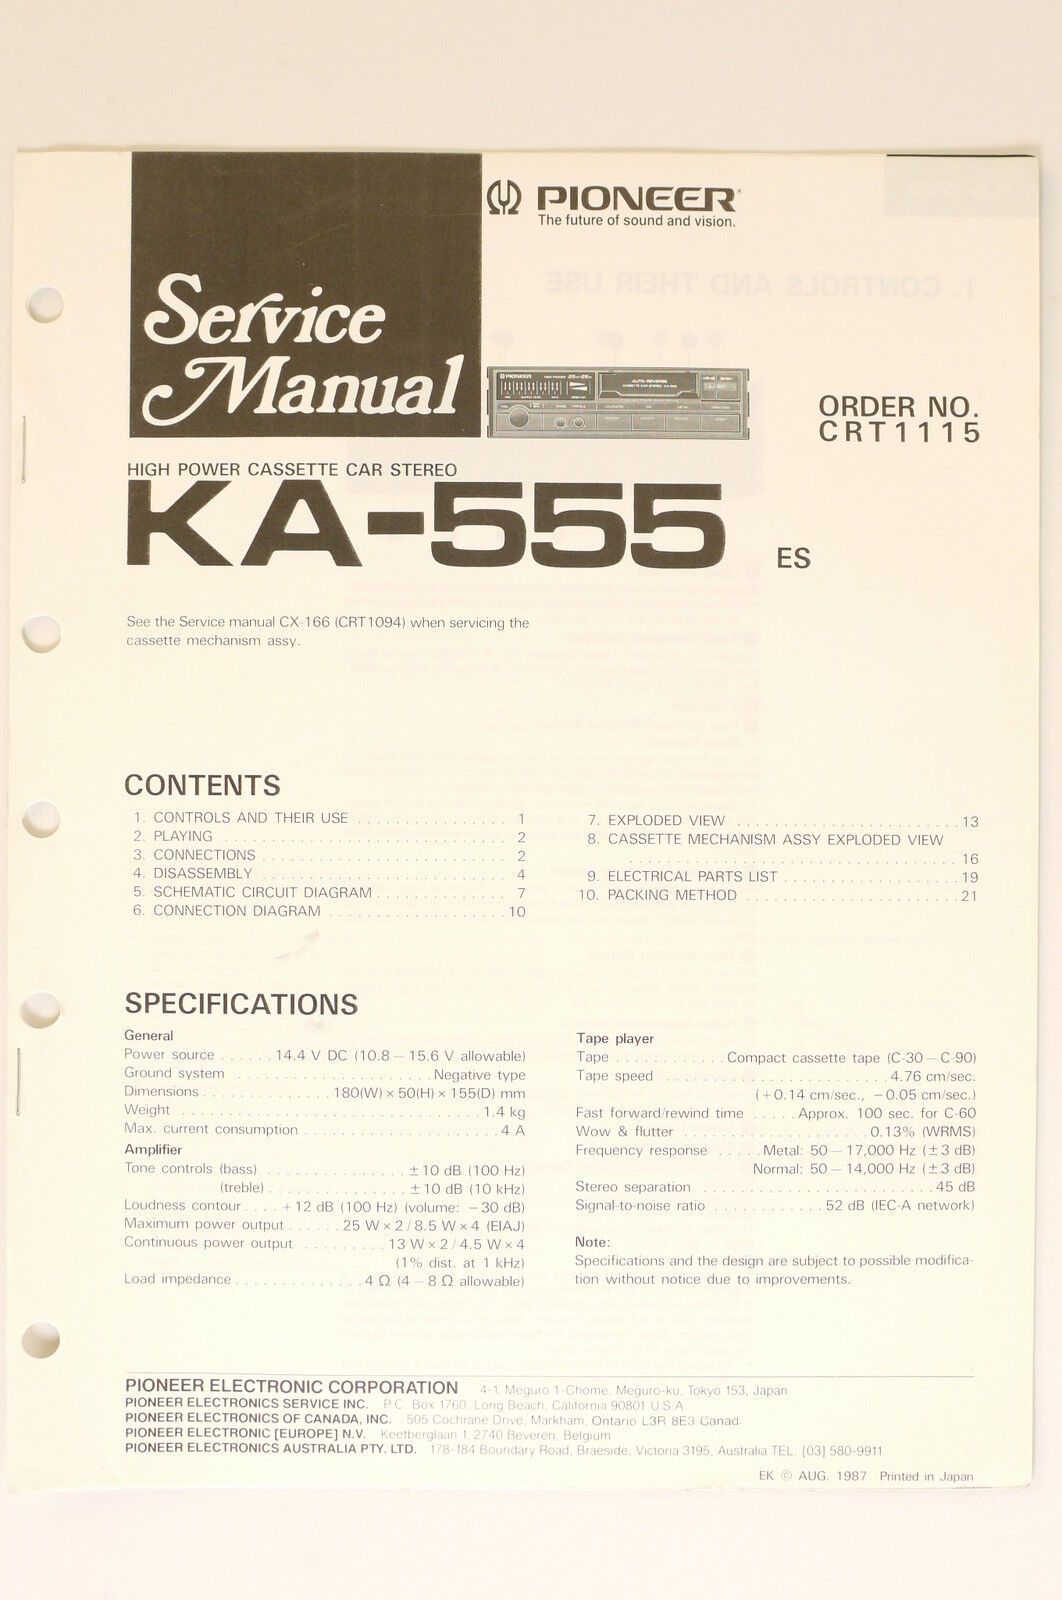 Pioneer Ka 555 Original Service Manual Guide Wiring Diagram O65 Japan Car 1 Of 1only Available